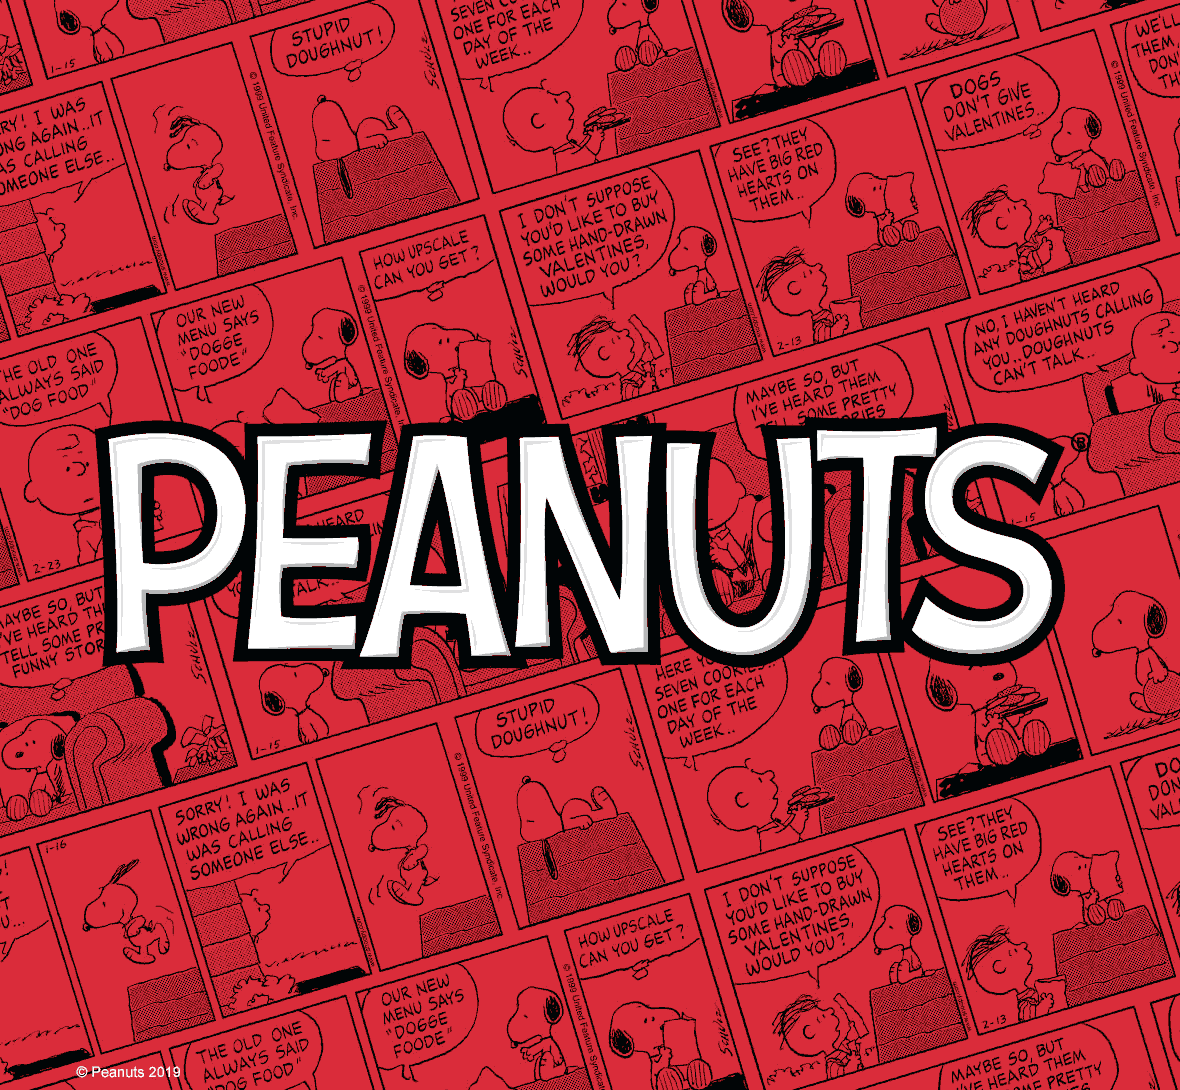 Officially licensed Peanuts comics and logo design